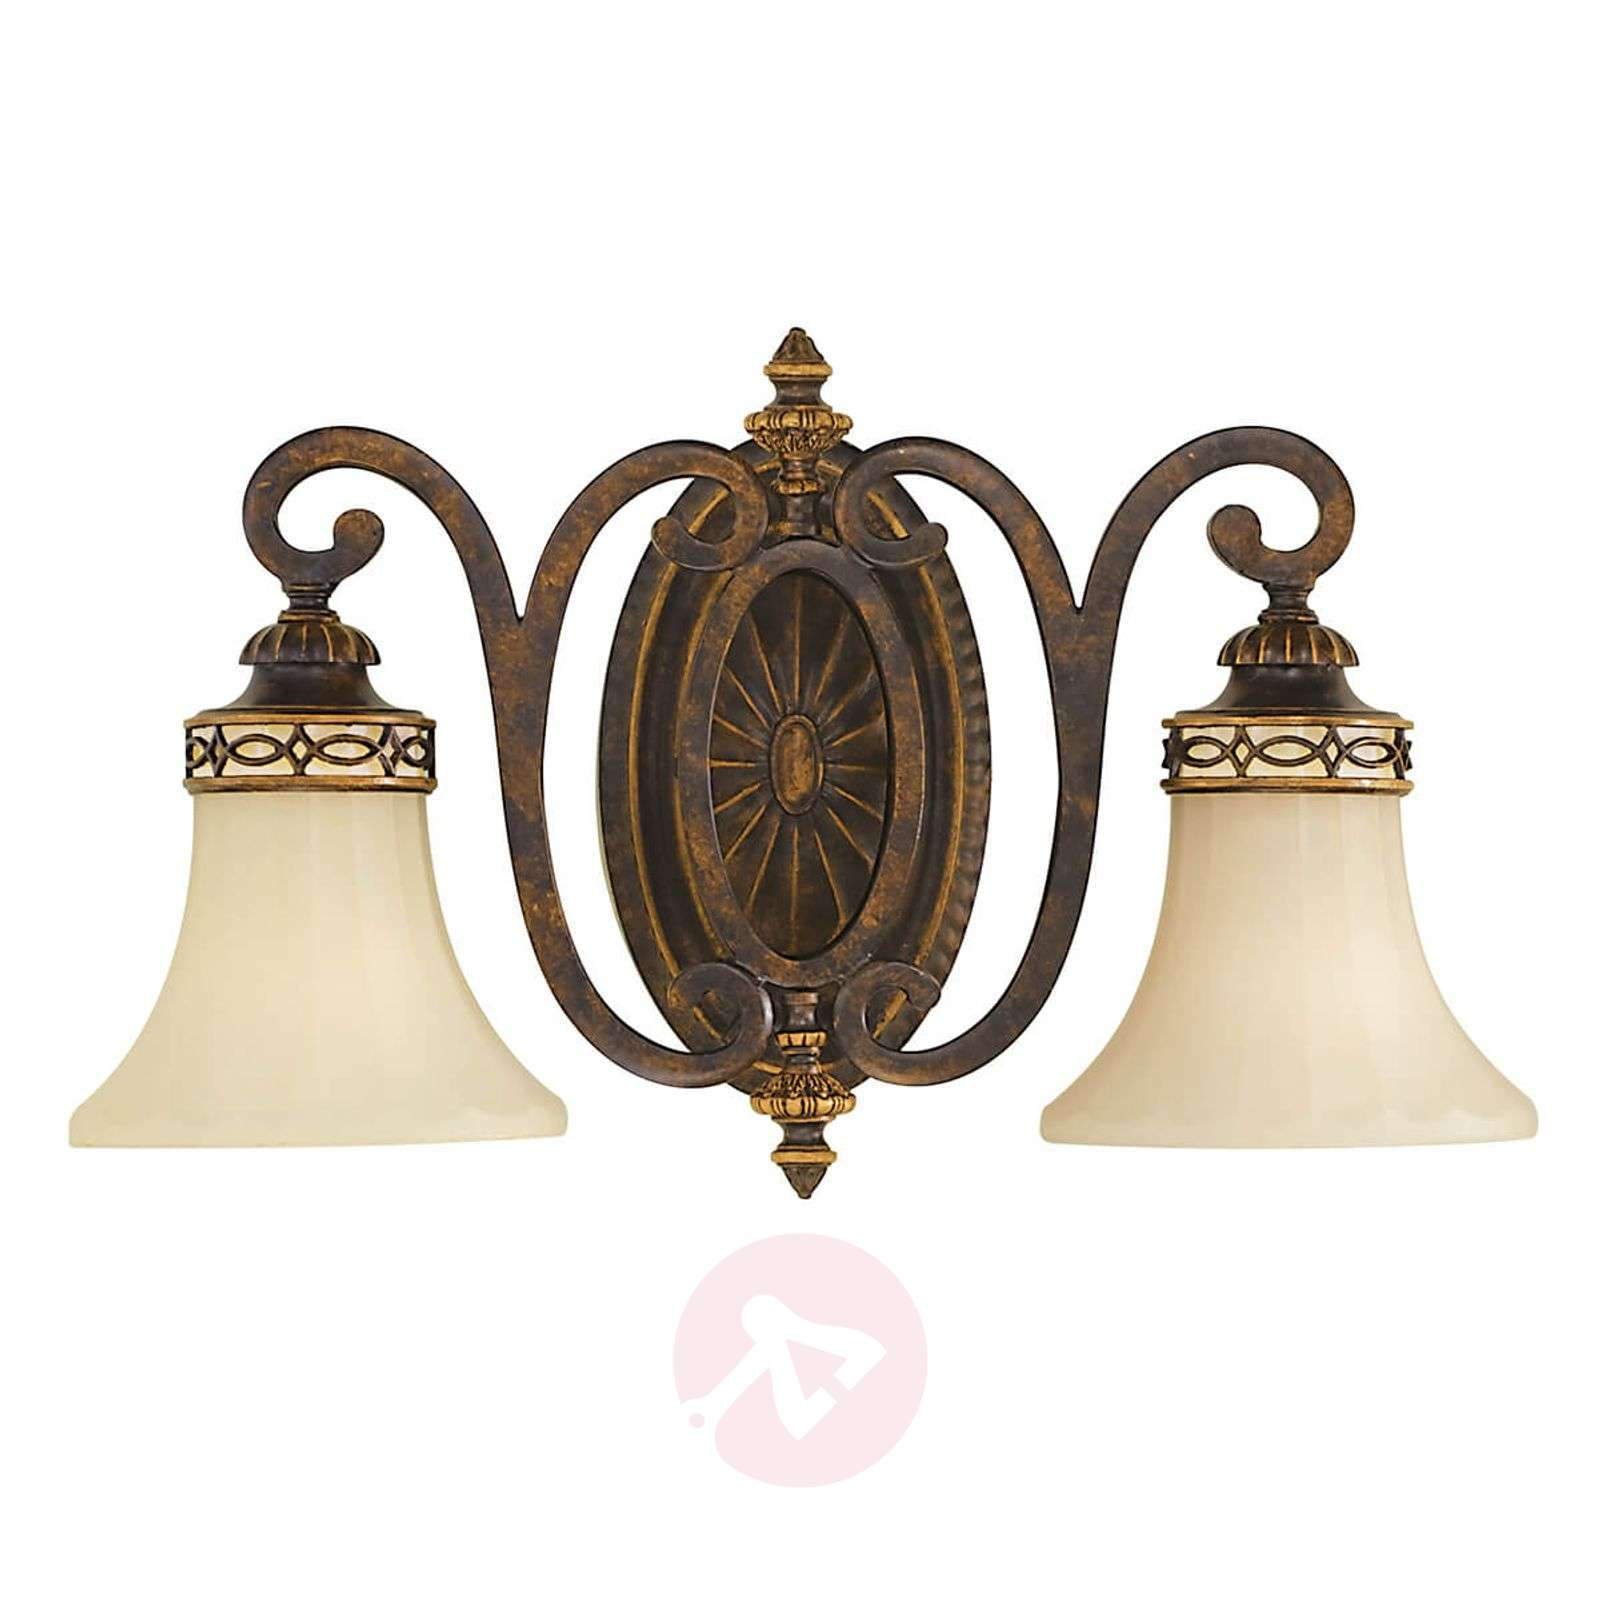 Wandlamp Drawing Room, met 2 lampjes, breed-3048531-01